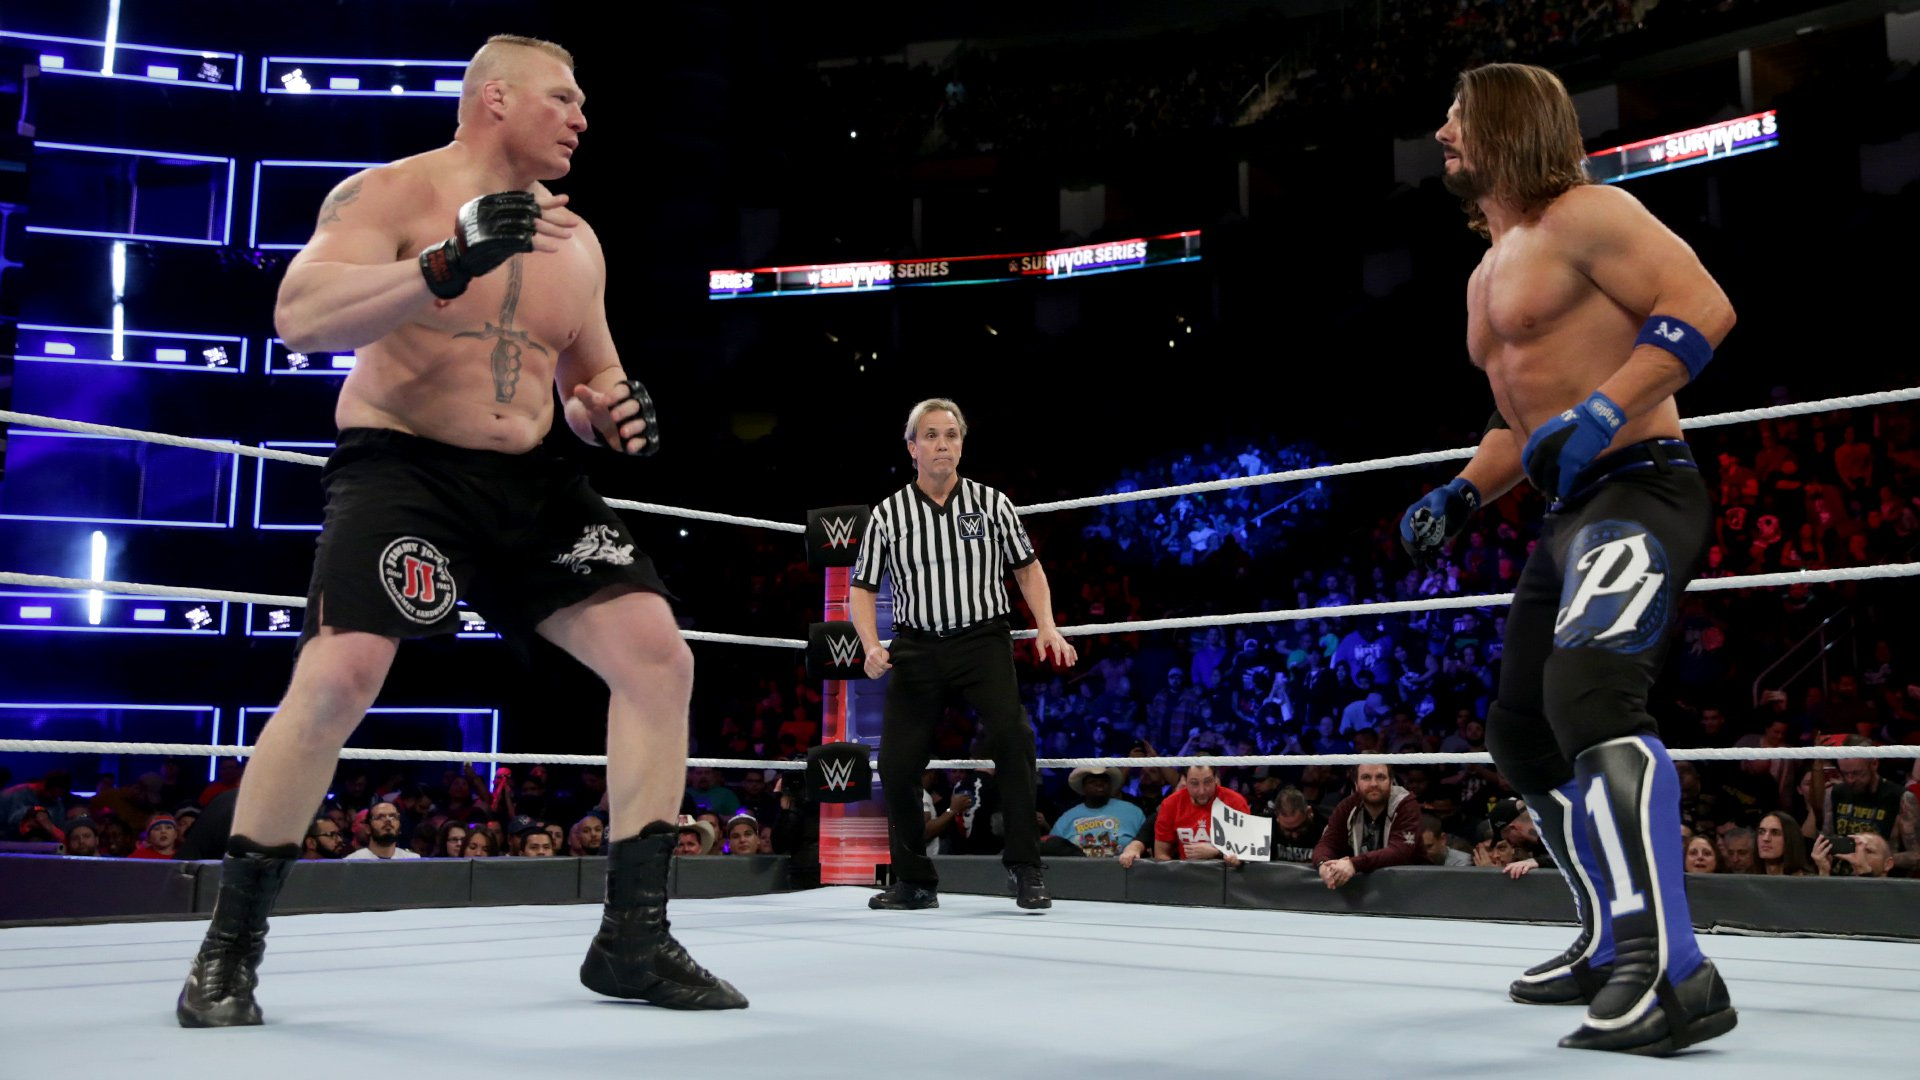 WWE Survivor Series 2017 Review 11/19/2017